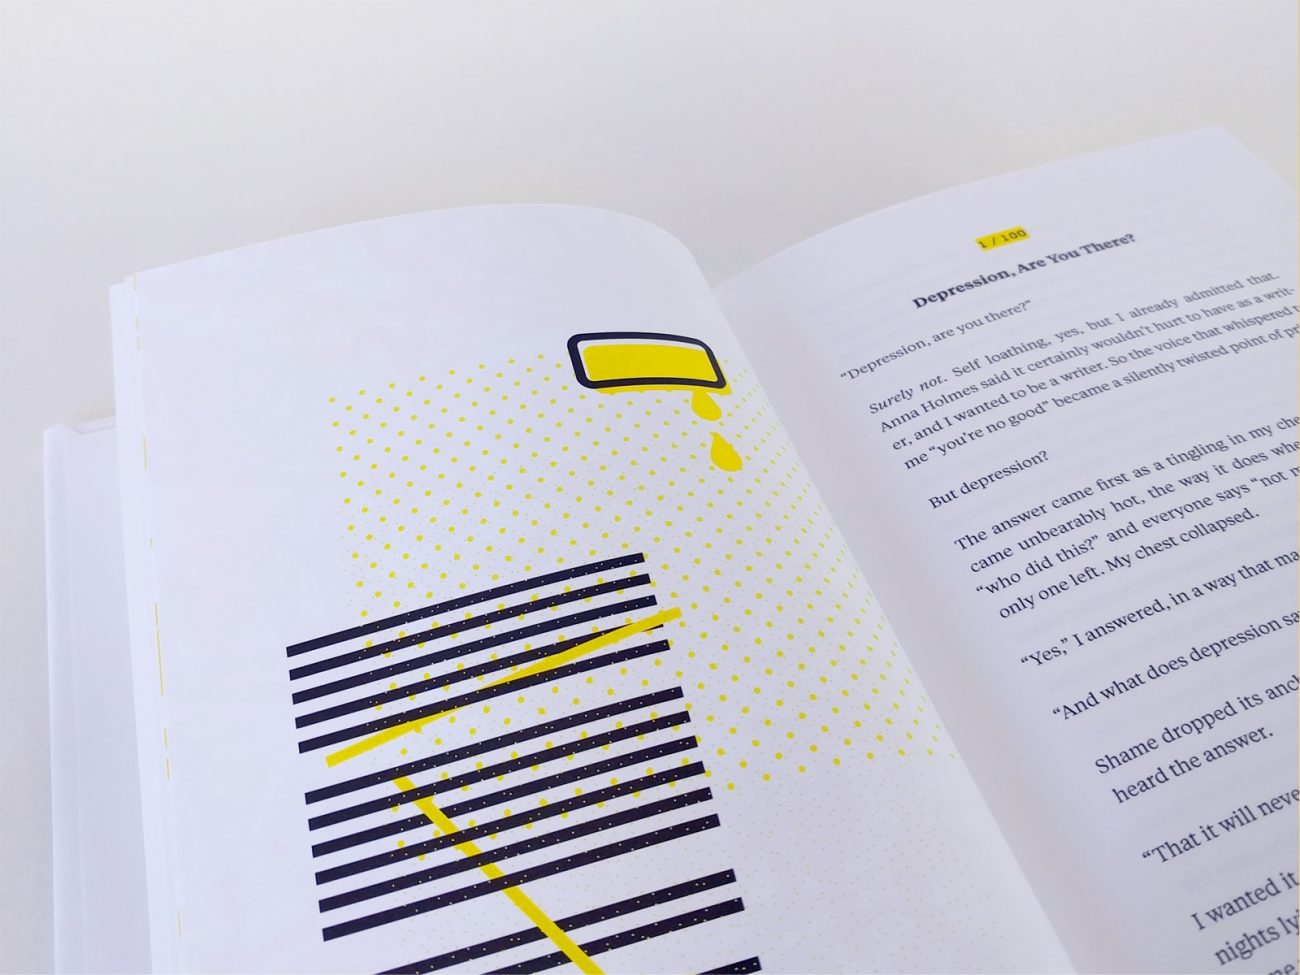 A Google Designer Made His Personal E-mail Series Into A Beautiful Book